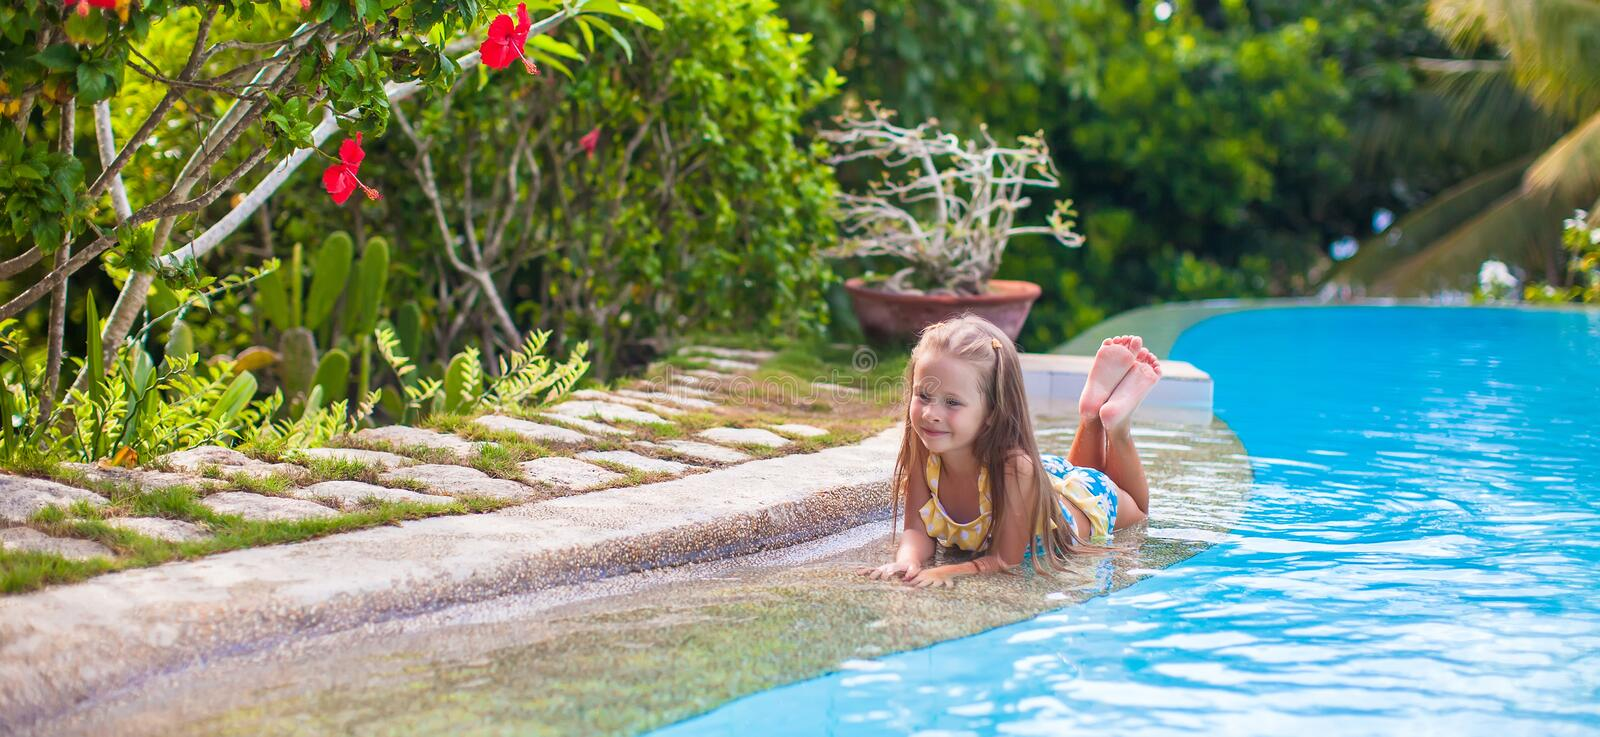 Little adorable girl in swimming pool relax. Little adorable girl in the swimming pool looks at camera royalty free stock image